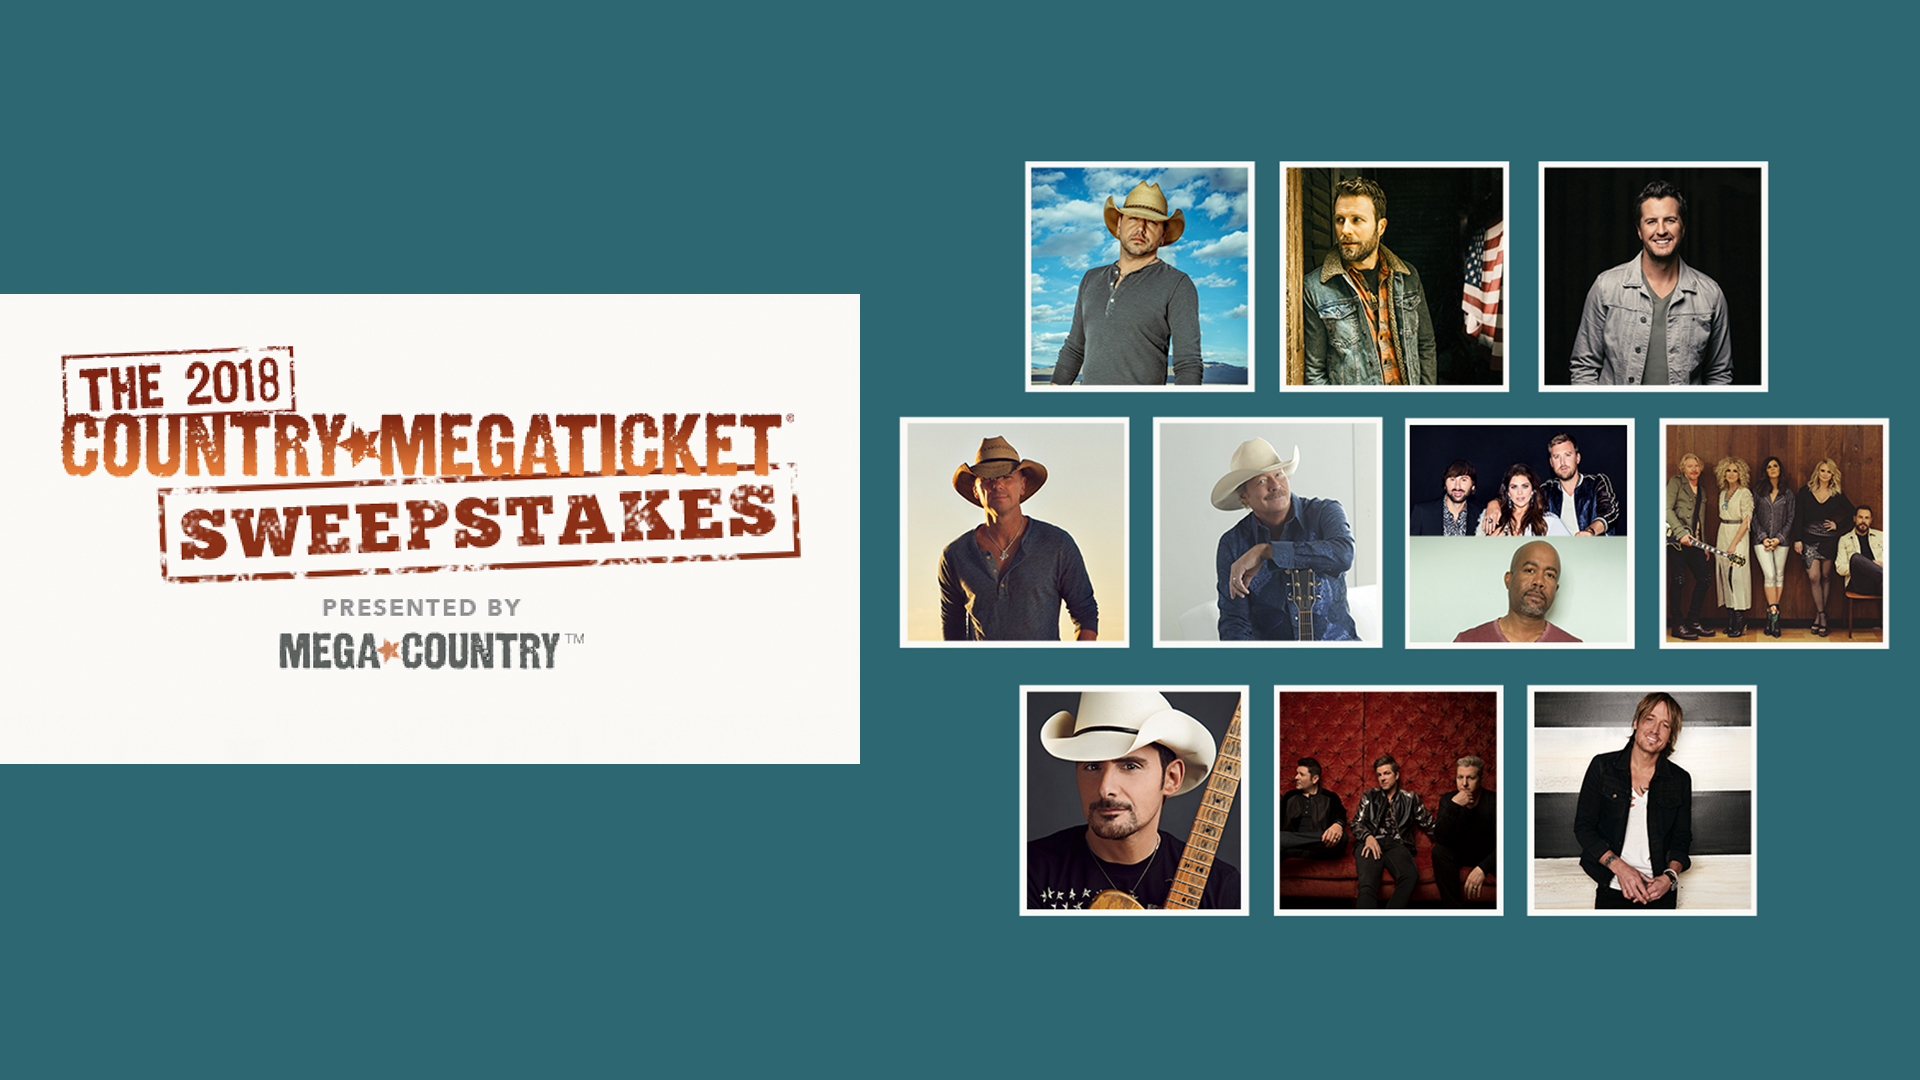 The 2018 Country Megaticket ® Sweepstakes | News | MegaCountry